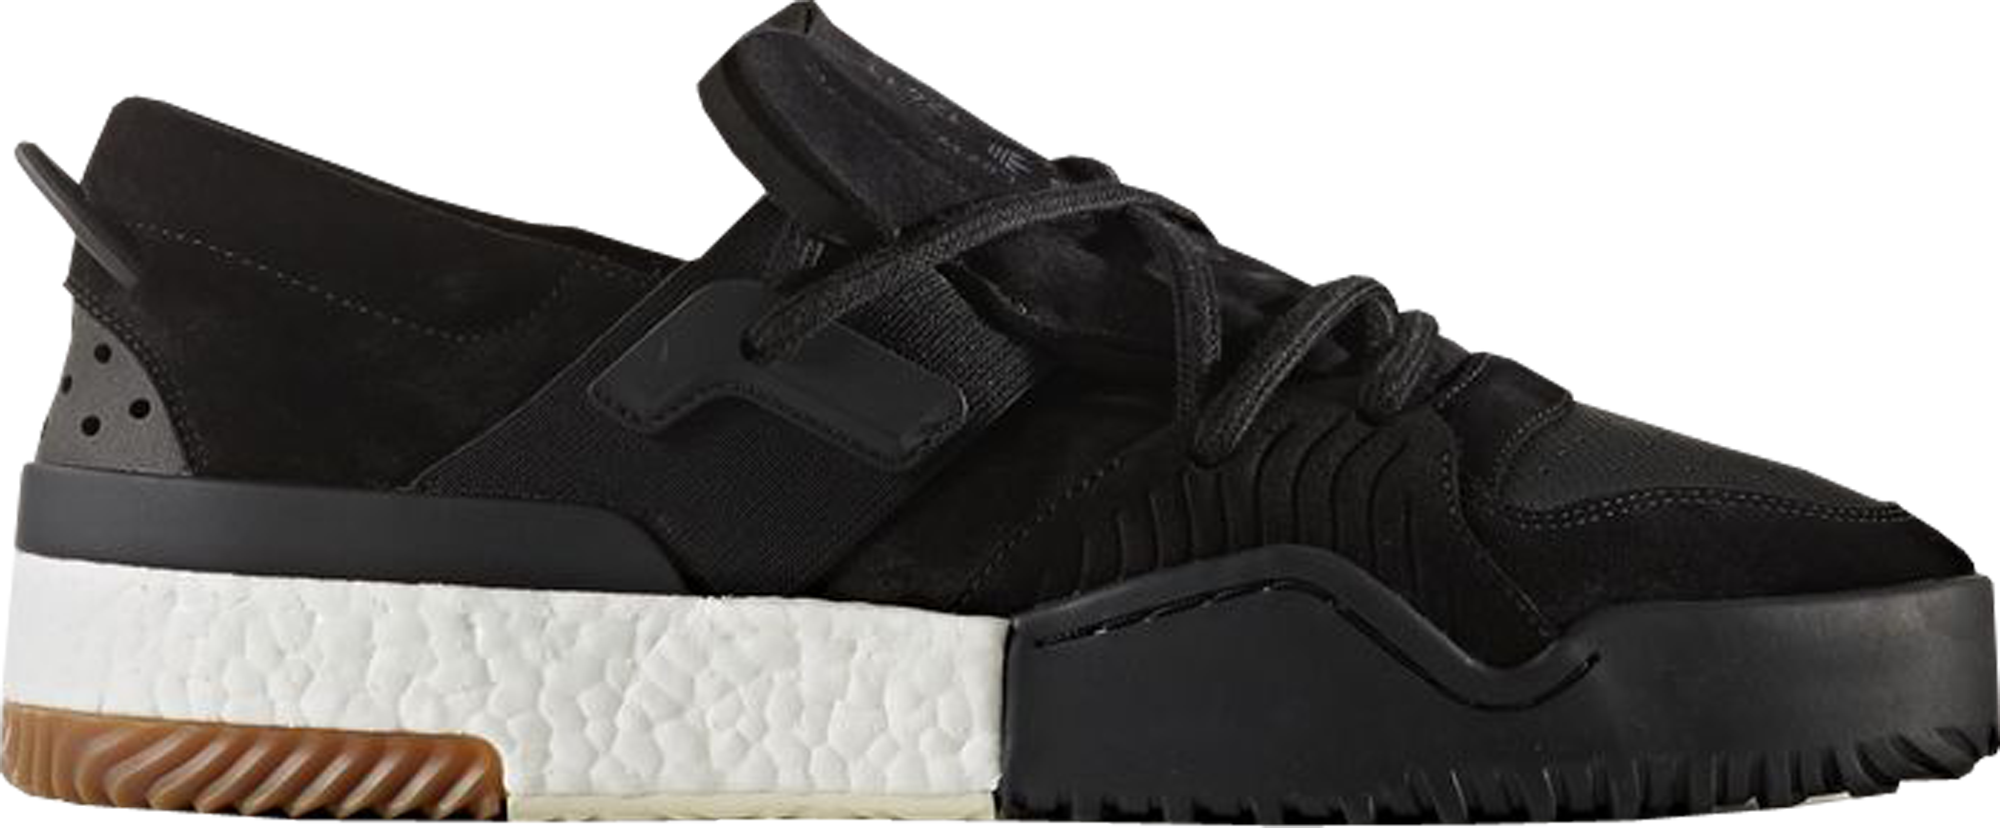 finest selection af06d 38686 adidas x alexander wang reissue low top sneaker